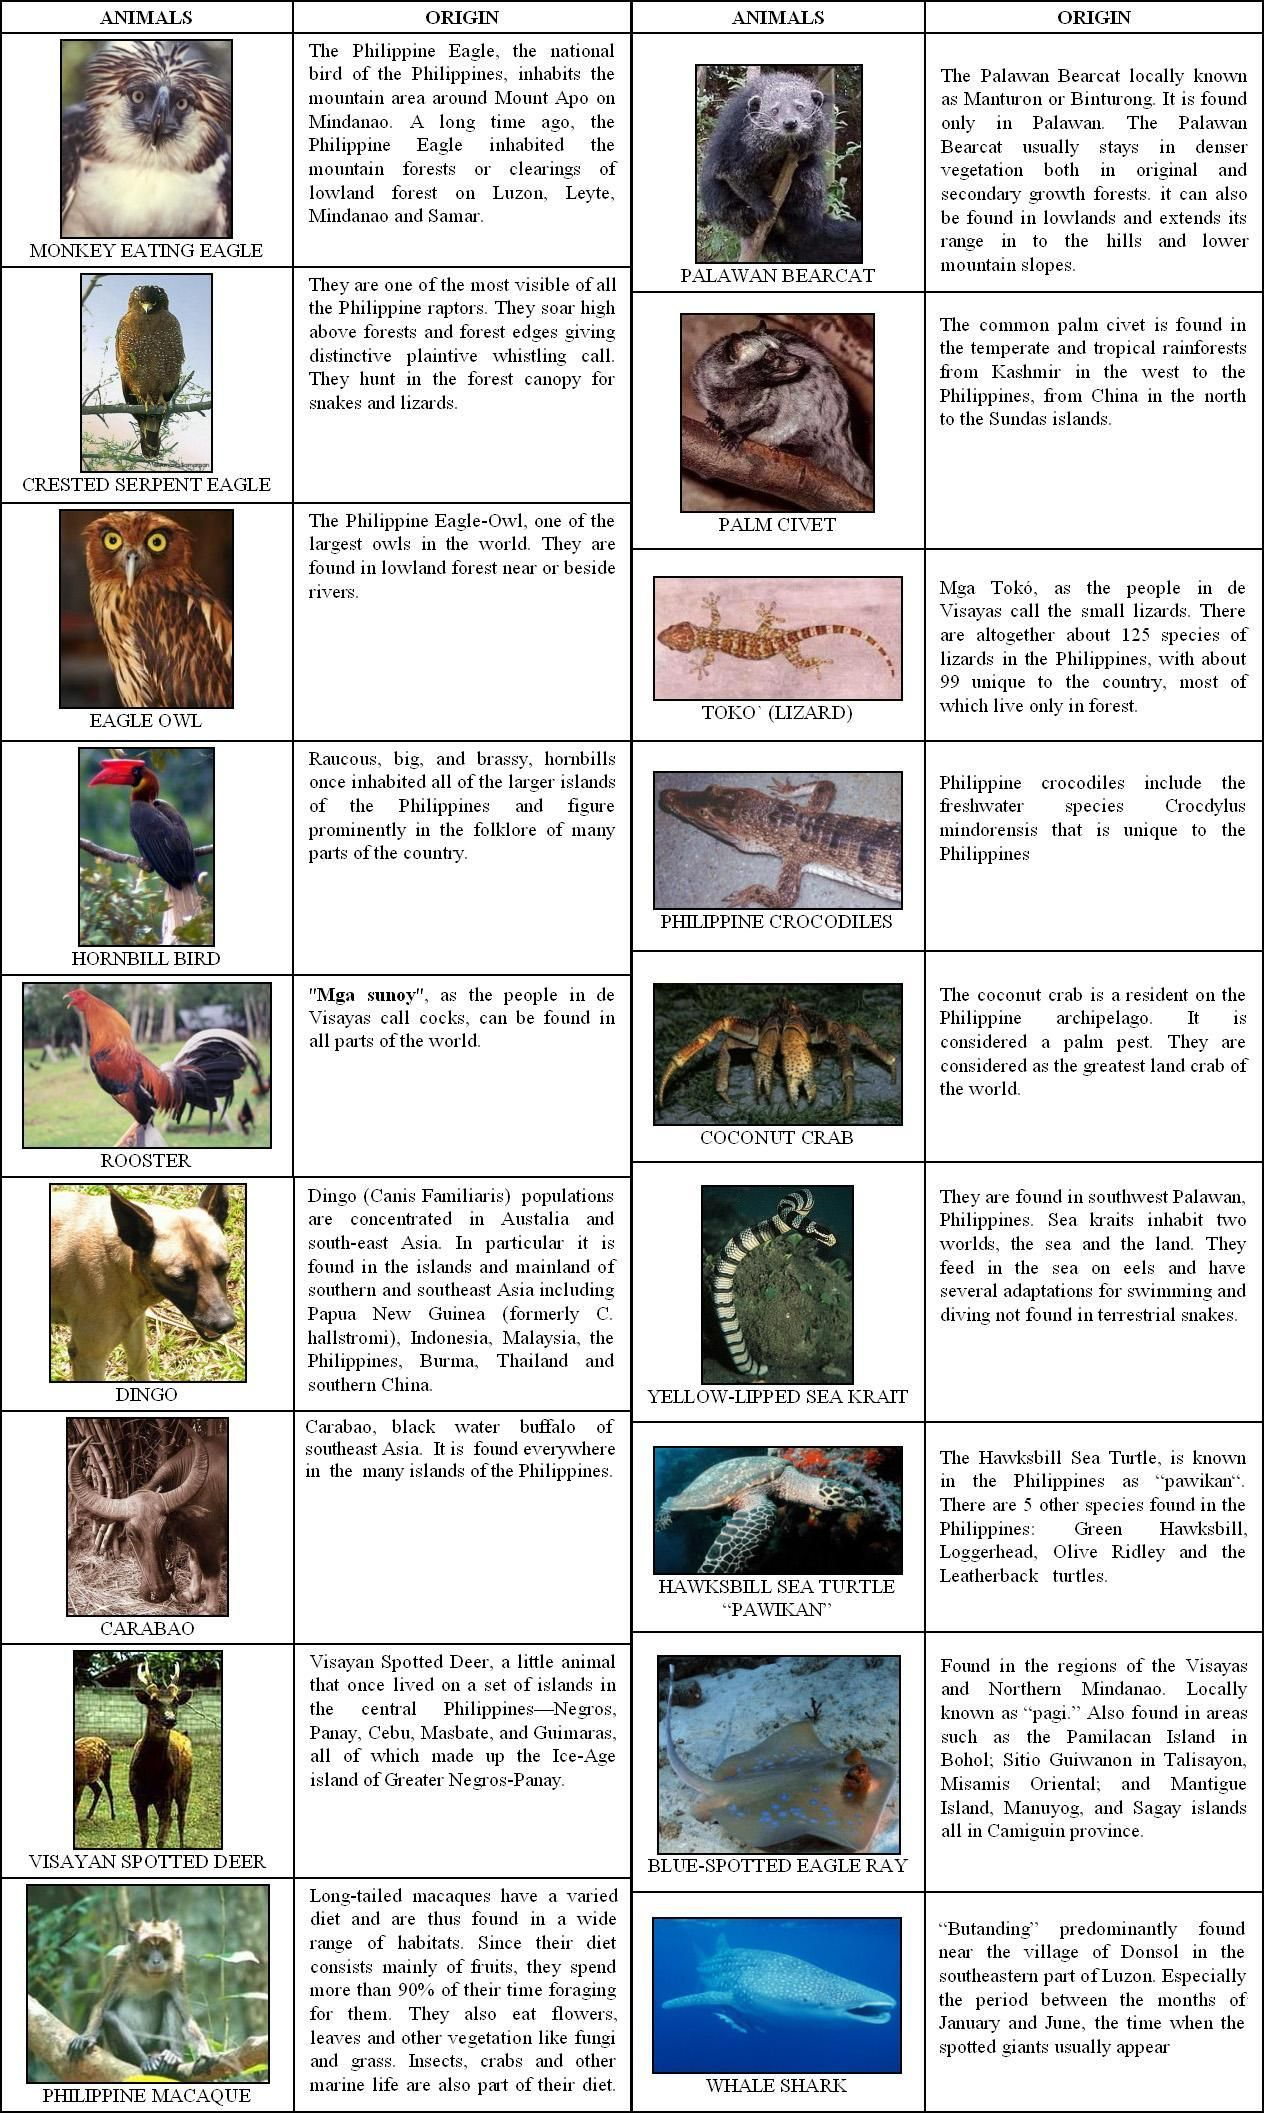 animals and their characteristics | FUNNY ANIMAL | Pinterest